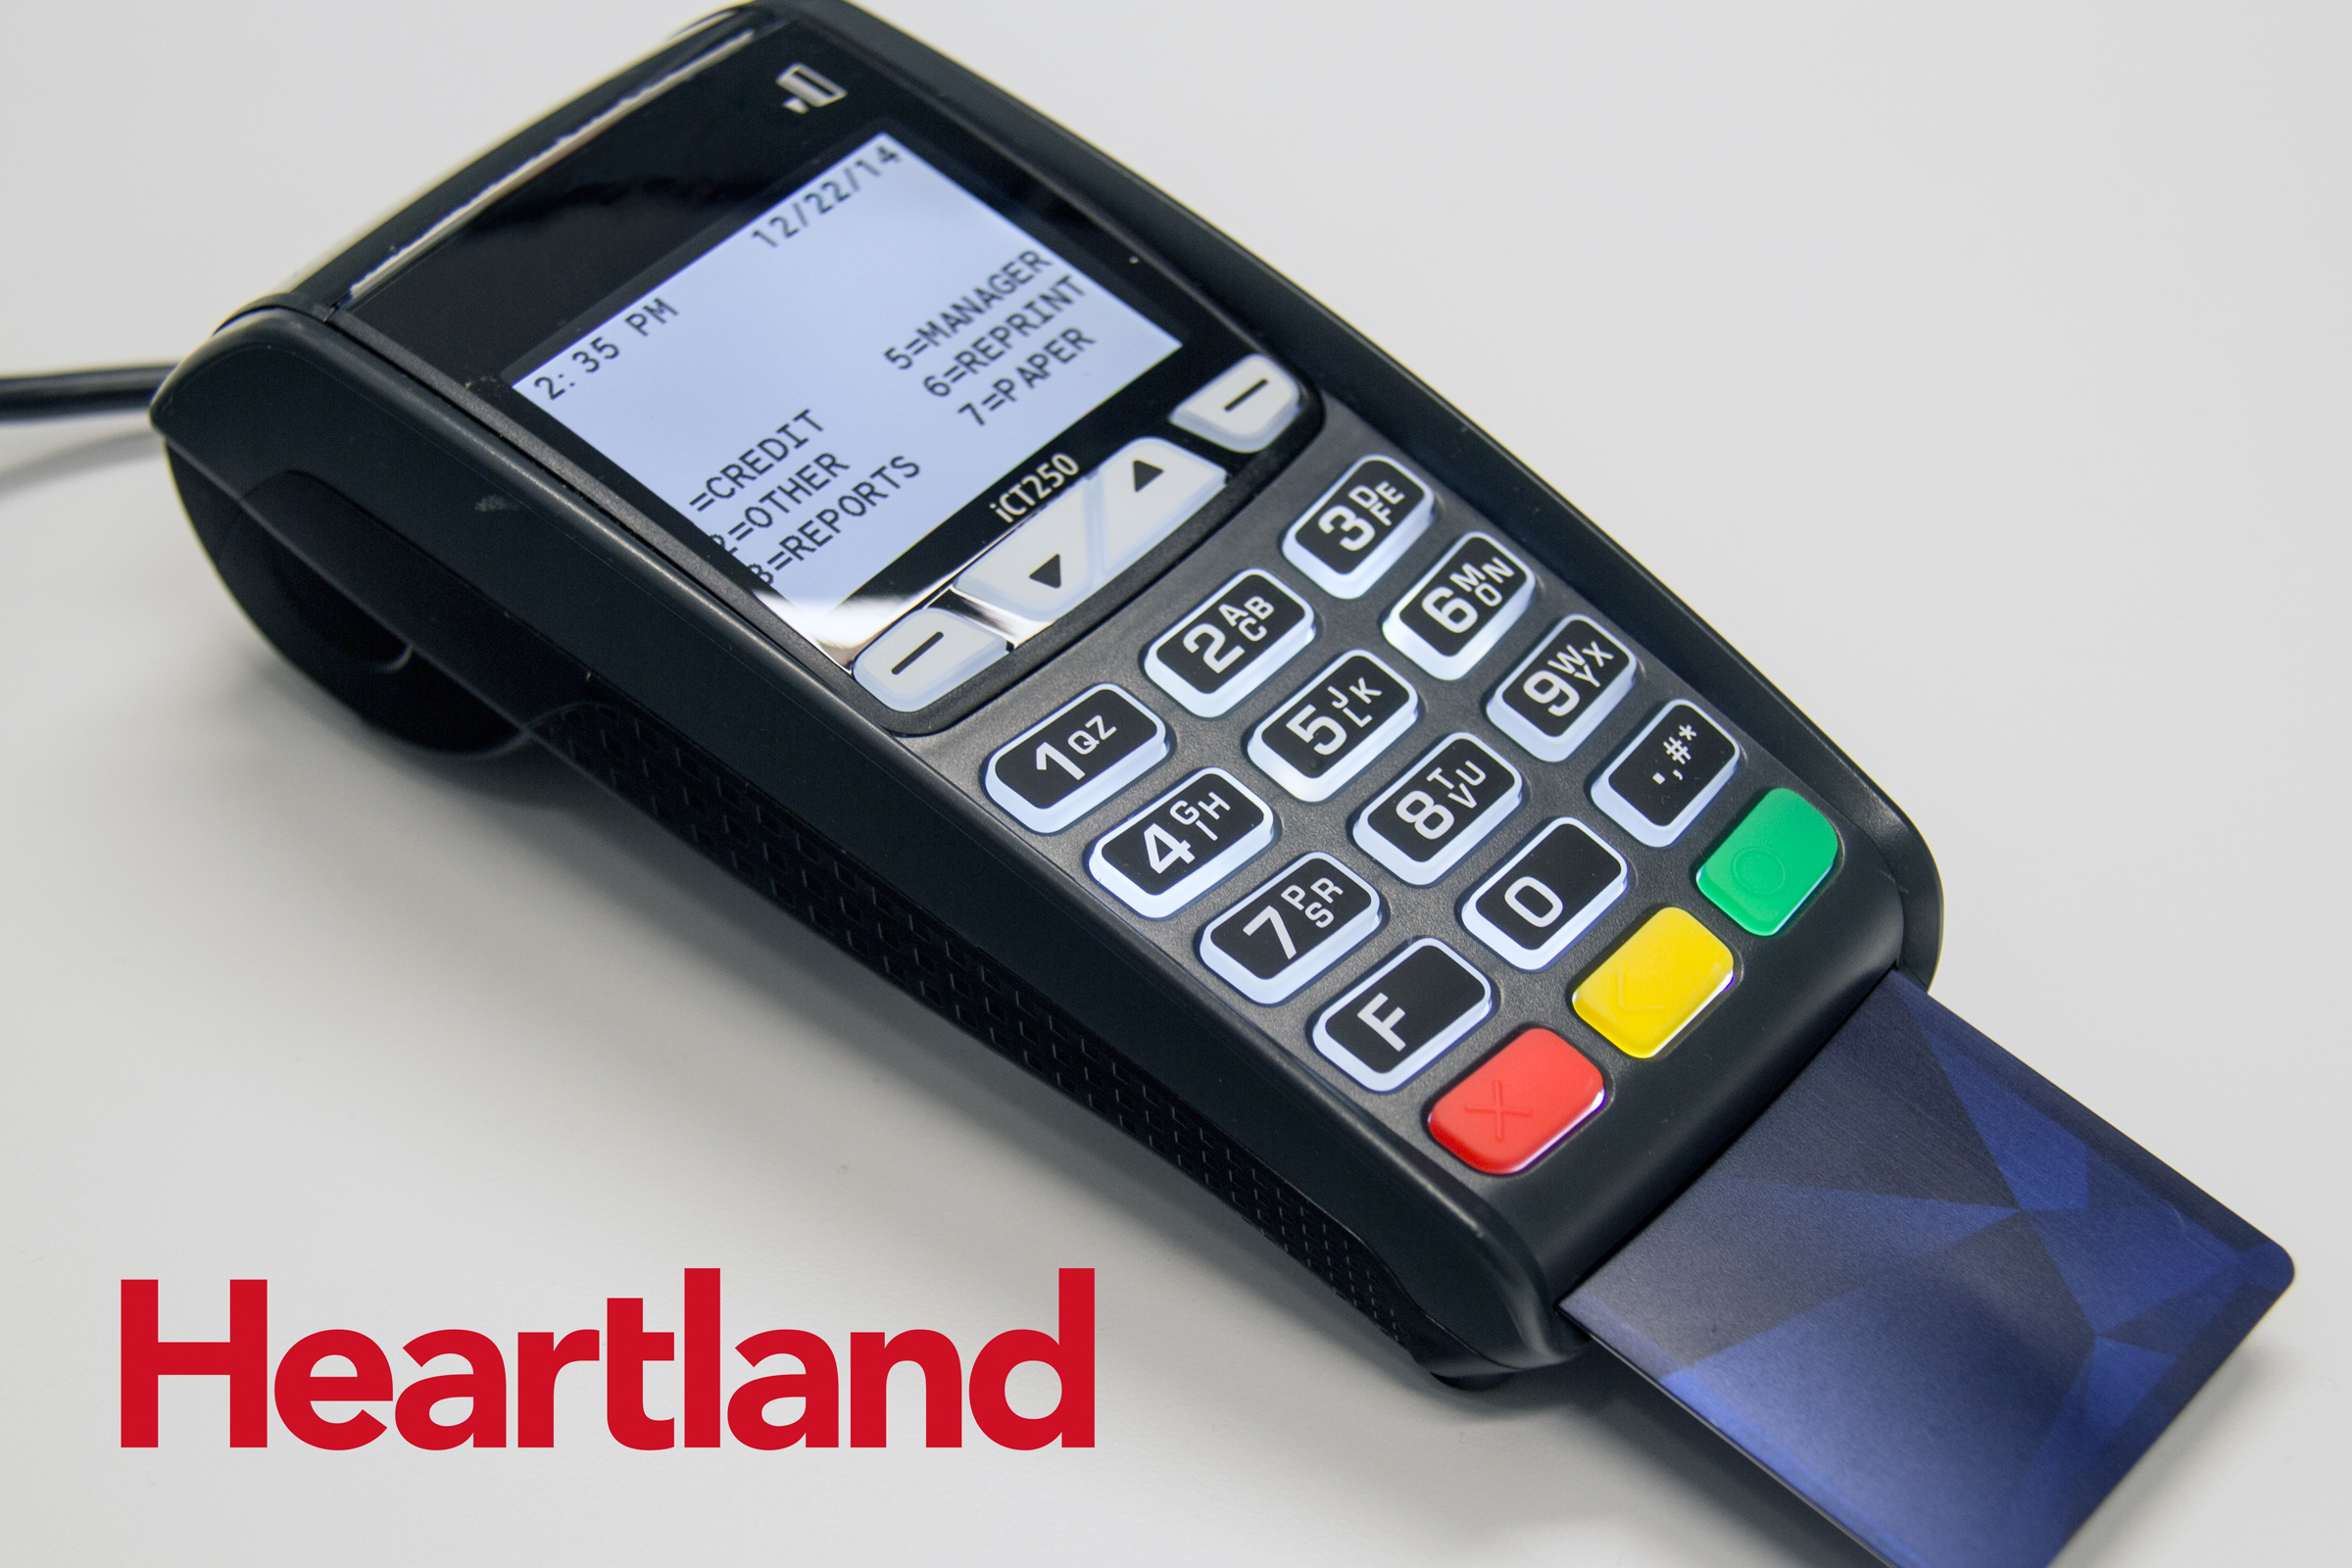 Mobile phone, tablet, laptop, terminal and point of sale system. Heartland First To Offer Comprehensive Merchant Breach Warranty